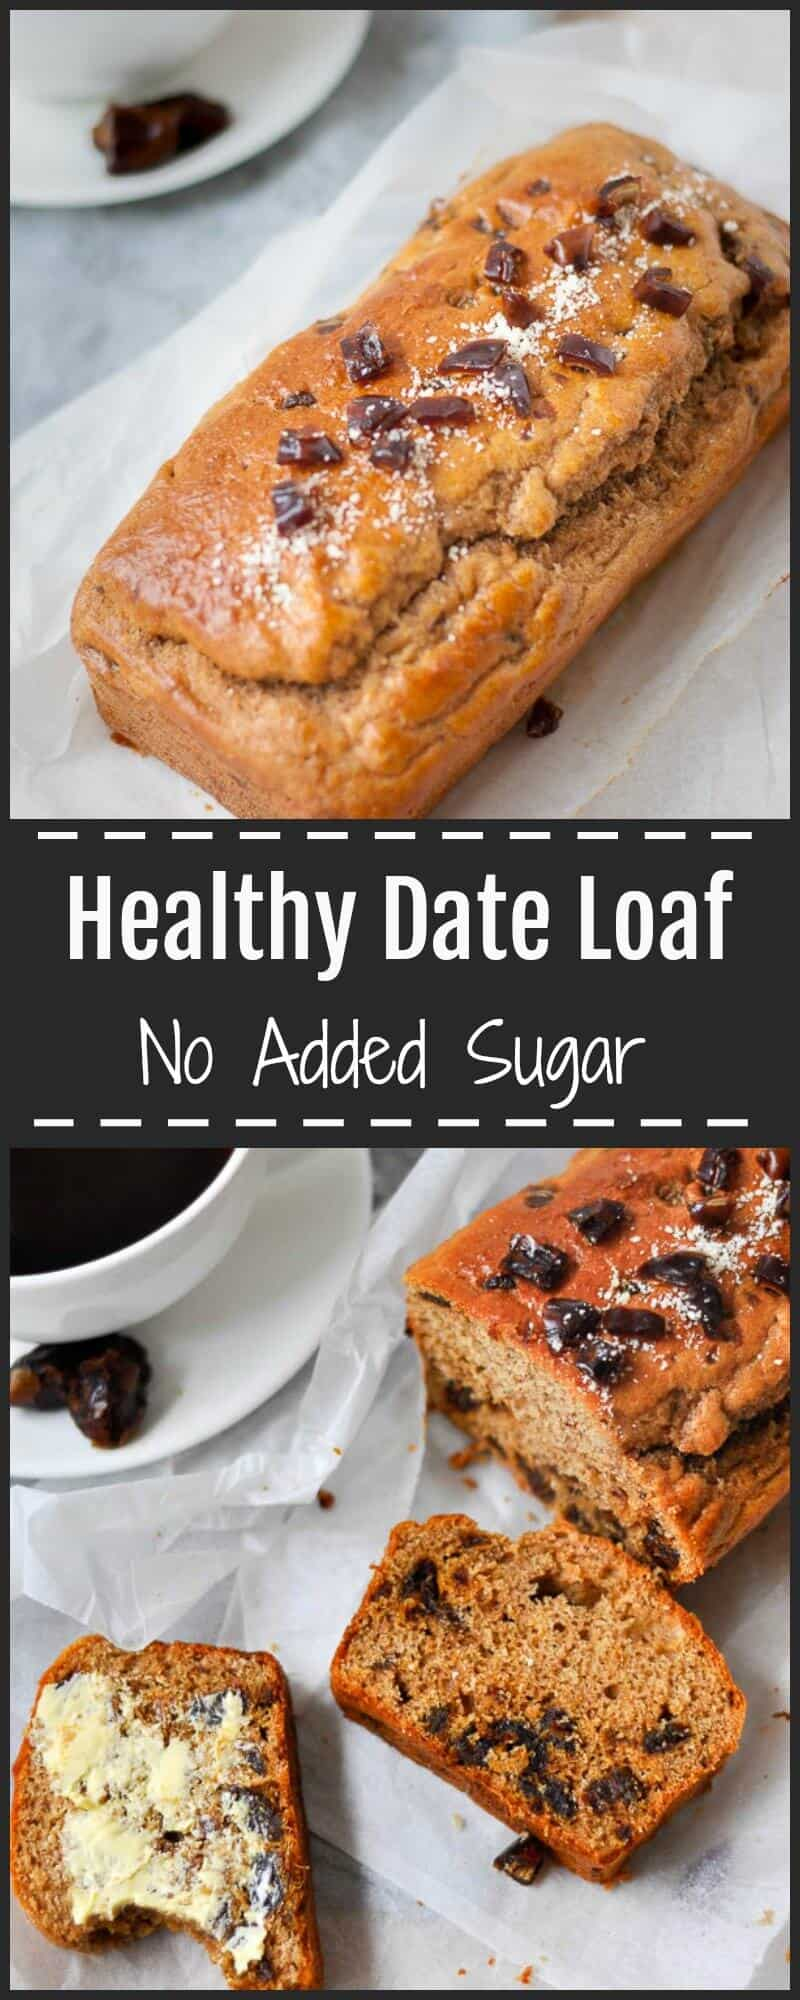 This easy to make Healthy Date Loaf contains no refined sugars and  is naturally sweetened with lots of juicy ripe dates and ground cinnamon spice.  It's only 8 ingredients and free from stevia/xylitol.  Very moist and makes 8 thick slices.